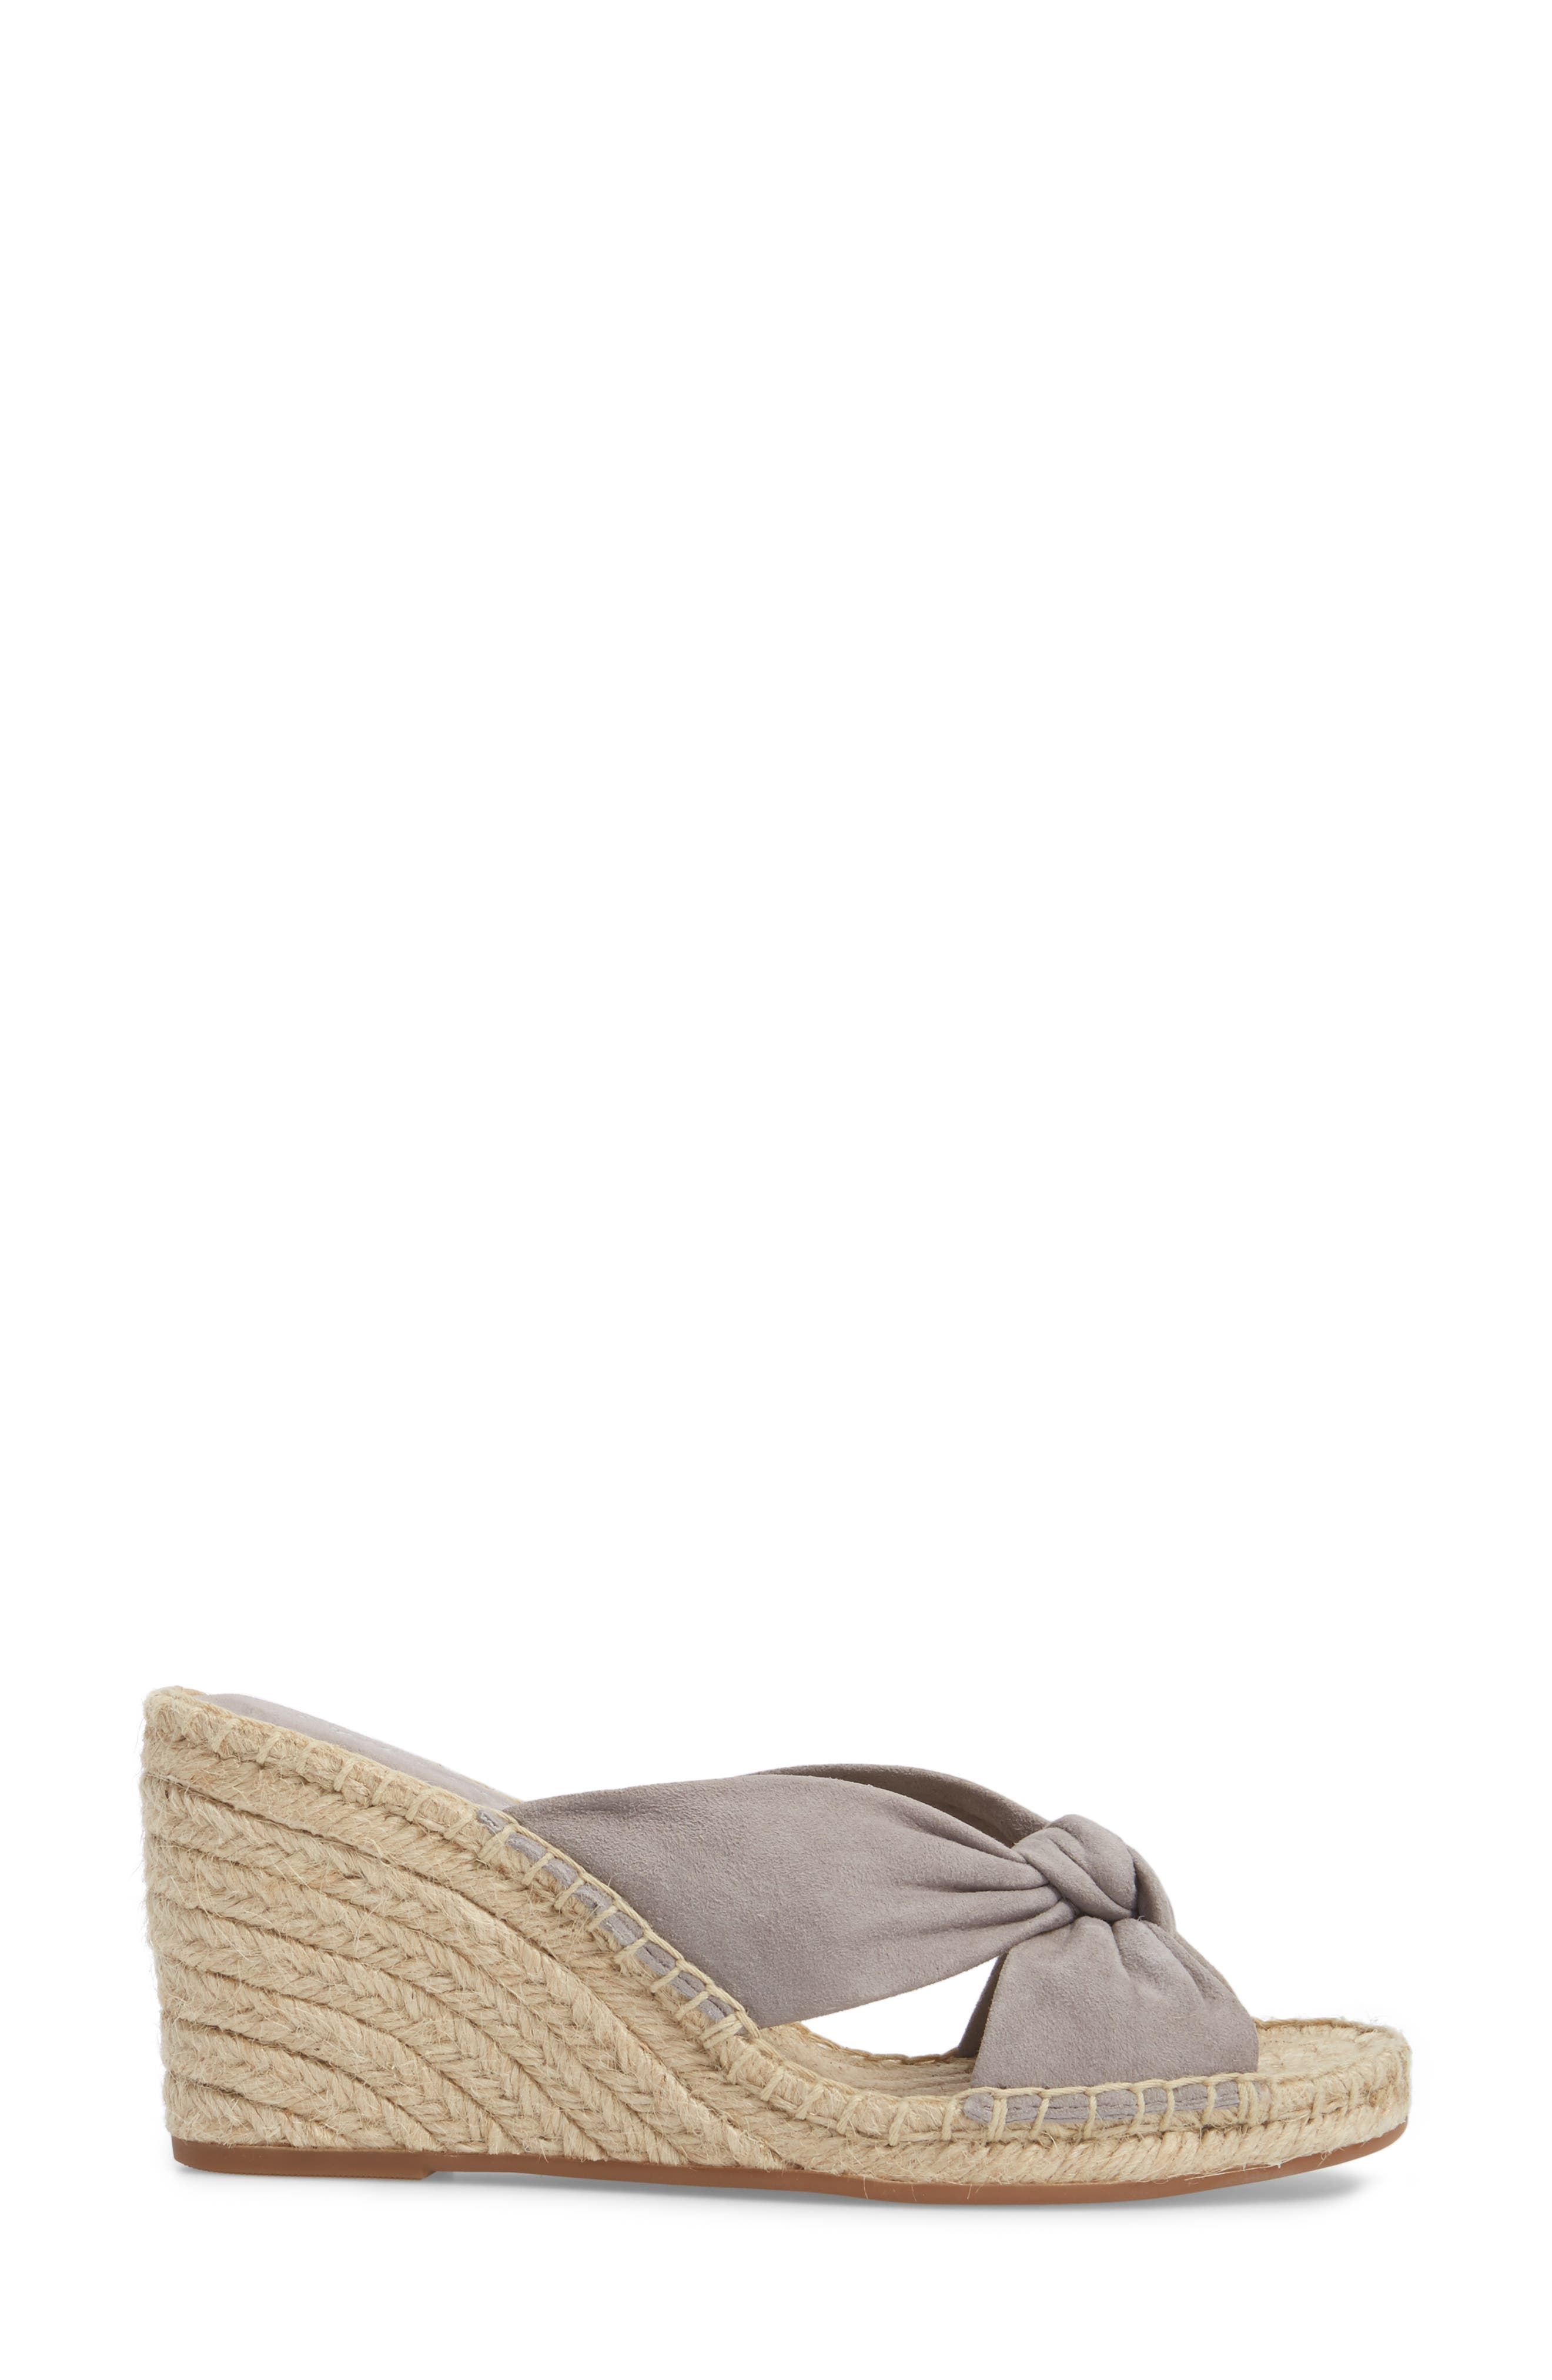 Bautista Knotted Wedge Sandal,                             Alternate thumbnail 3, color,                             053